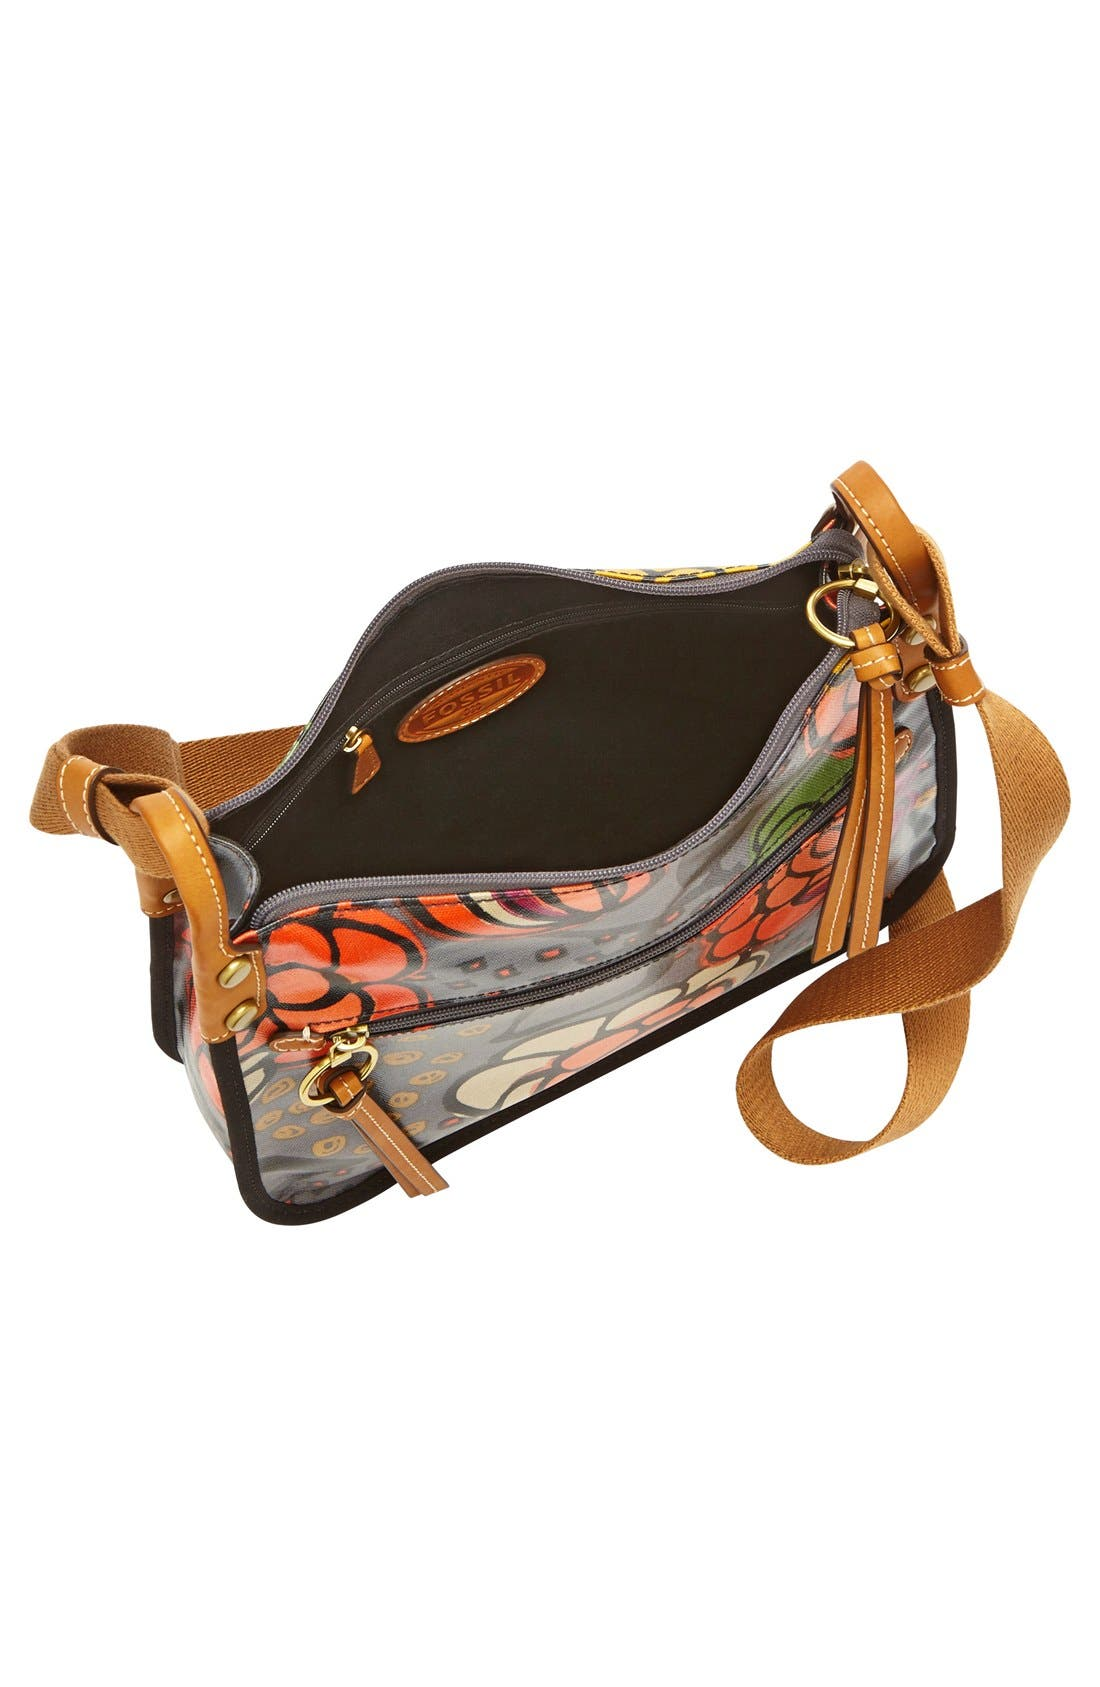 Alternate Image 2  - Fossil 'Key-Per' Print Coated Canvas Crossbody Bag